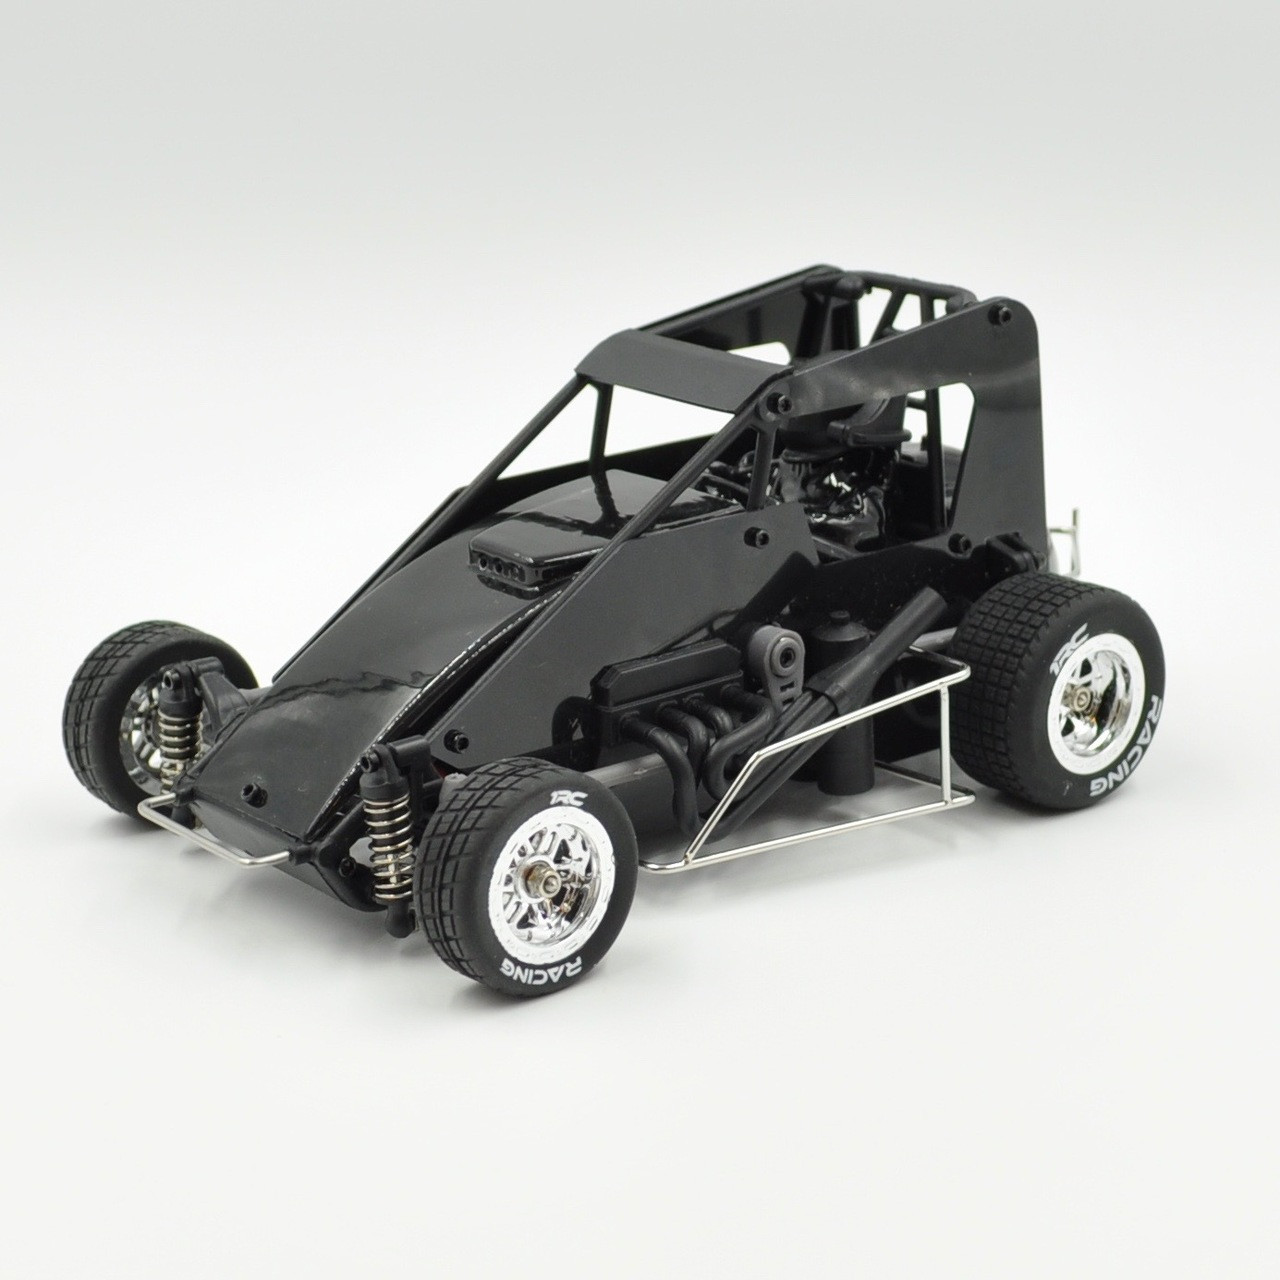 build your own radio controlled car with 1 18 Midget Black Rtr on The Ultimate Boys Toy The Giant Radio Controlled Tank Thats SO Powerful Pull Car further Bmw E46 Lighter Ebay together with Rc Adventures Cheap Tire Chains Tutorial How To Diy Snow Ice Mud Bogging additionally Rc Nitro Electric Petrol Cars On Off Road Versions besides 1 18 Midget Black Rtr.